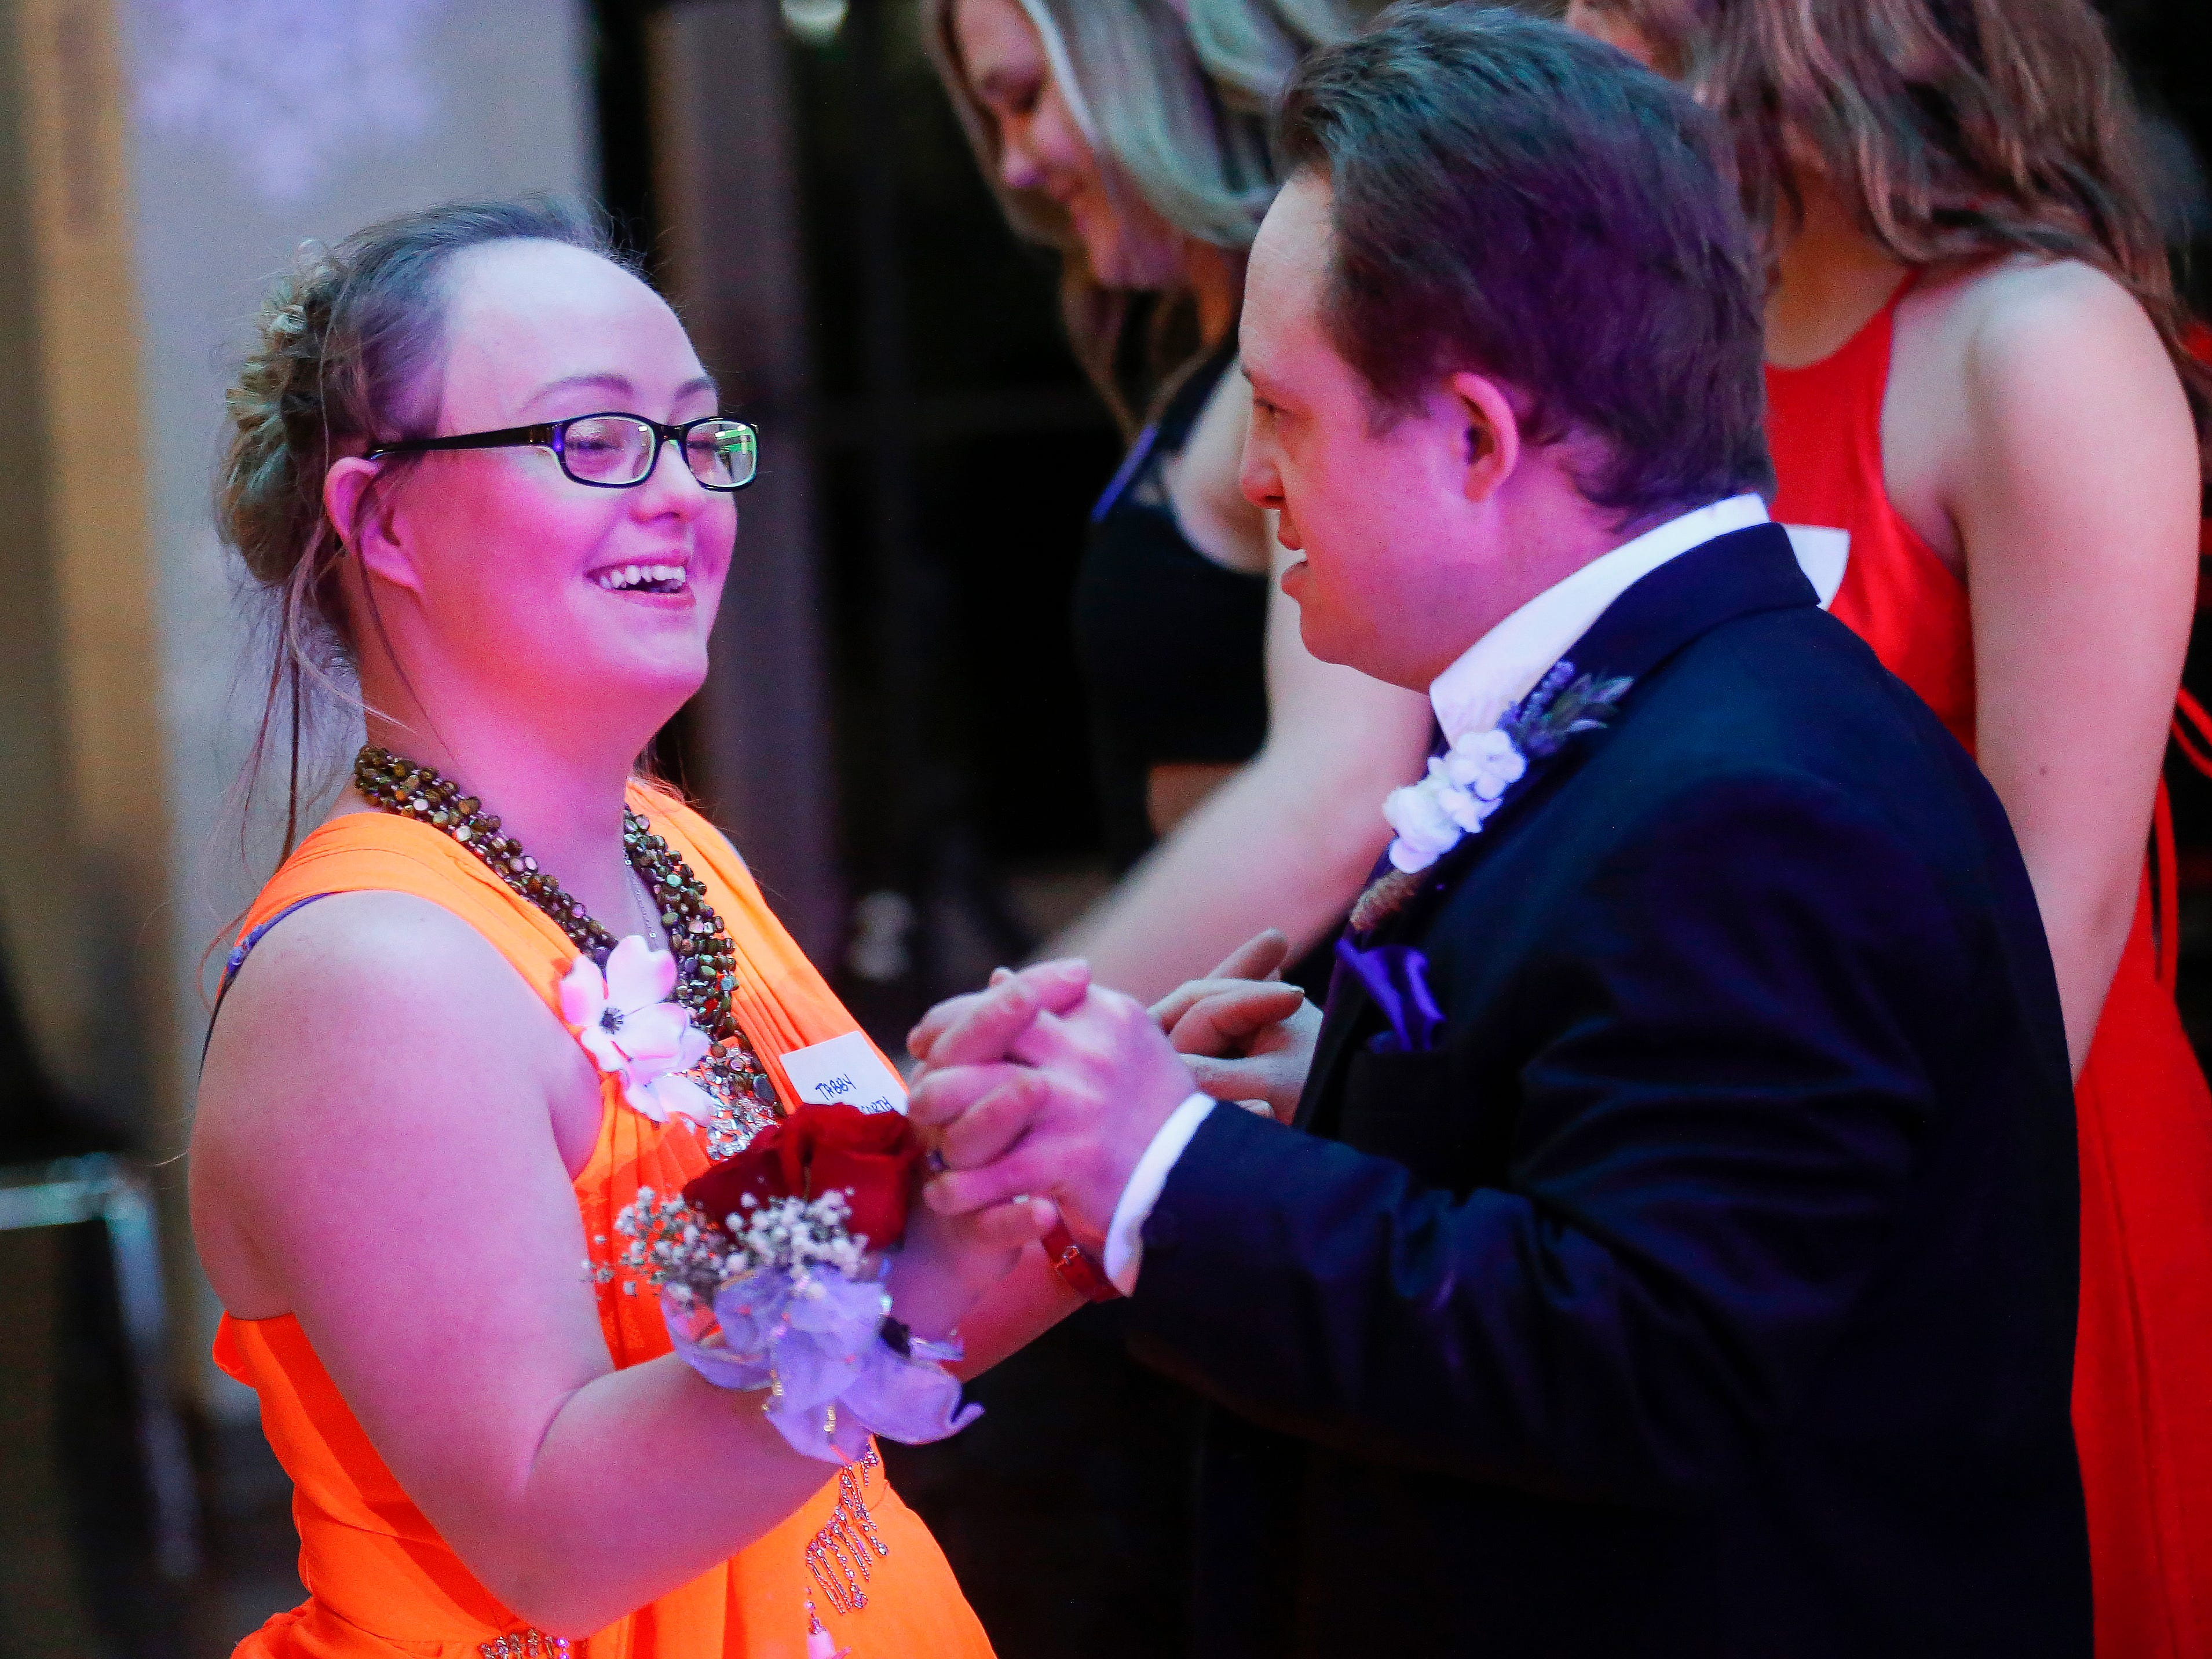 Tabby Hedgecorth and Nick Watterson share a dance during the Camp Barnabas Snow Ball at Springfield Catholic High School on Saturday, Jan. 26, 2019.